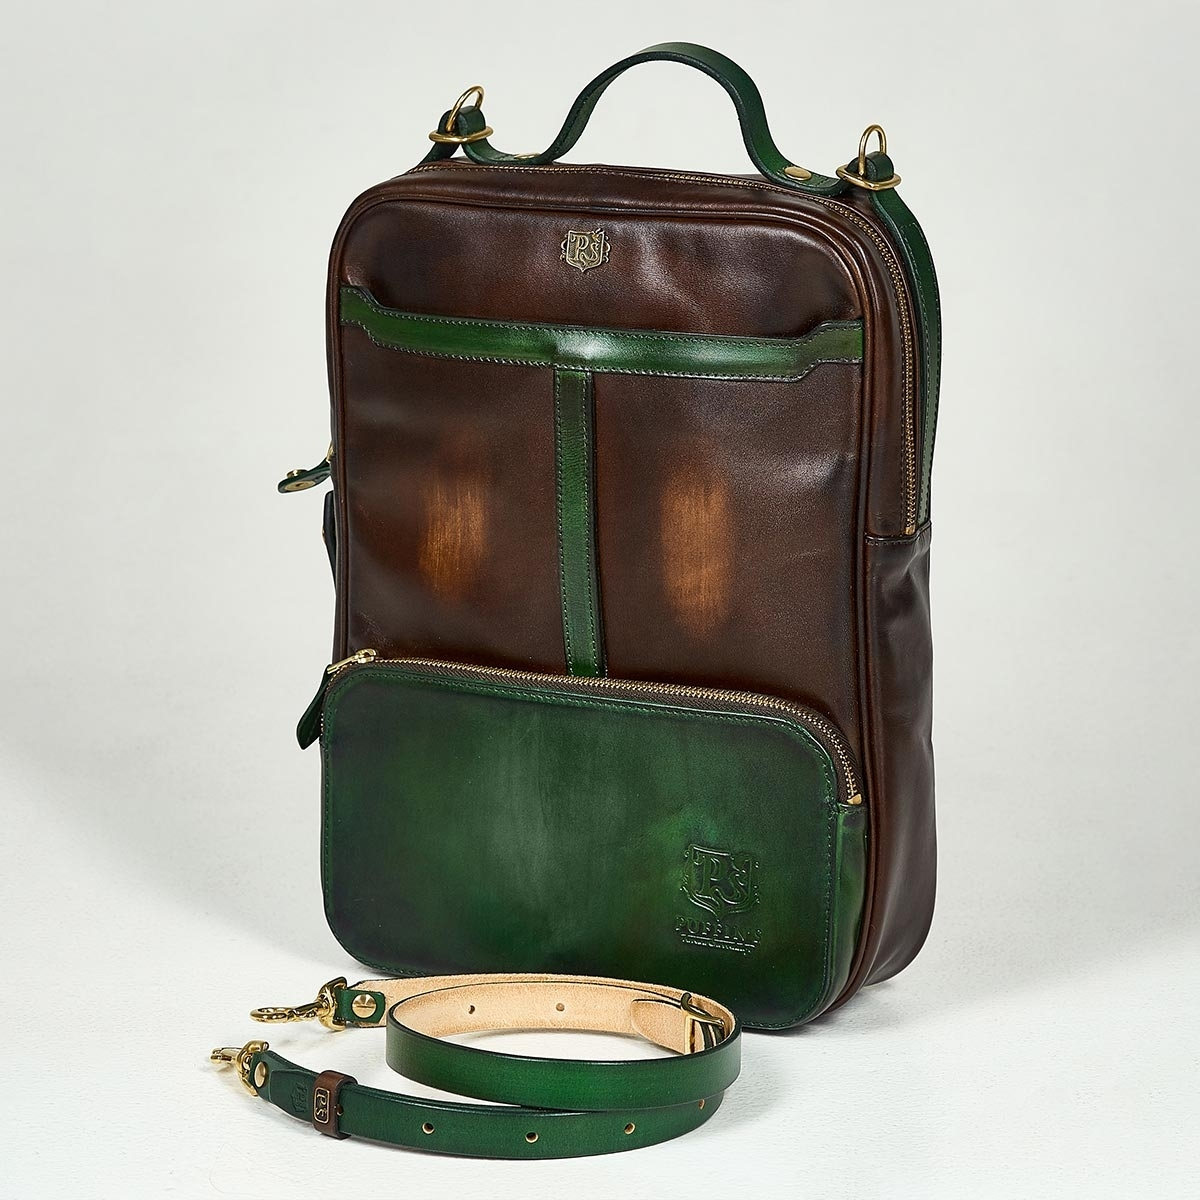 Crossbody bag-transformer CHELSEA grassy green & chestnut